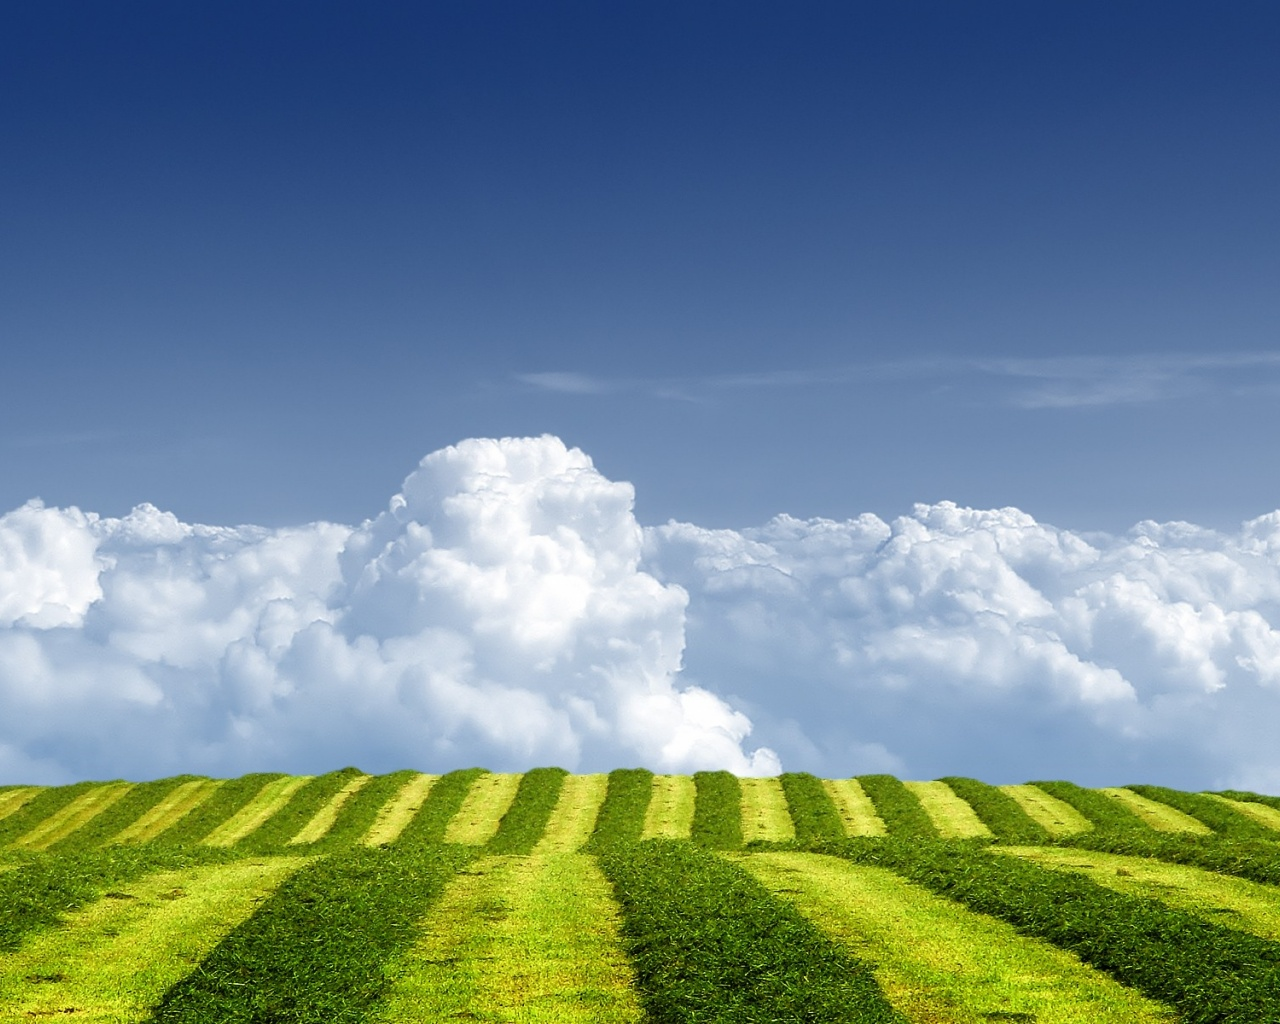 ws_Grass_Green_Field_Over_Clouds_1280x1024